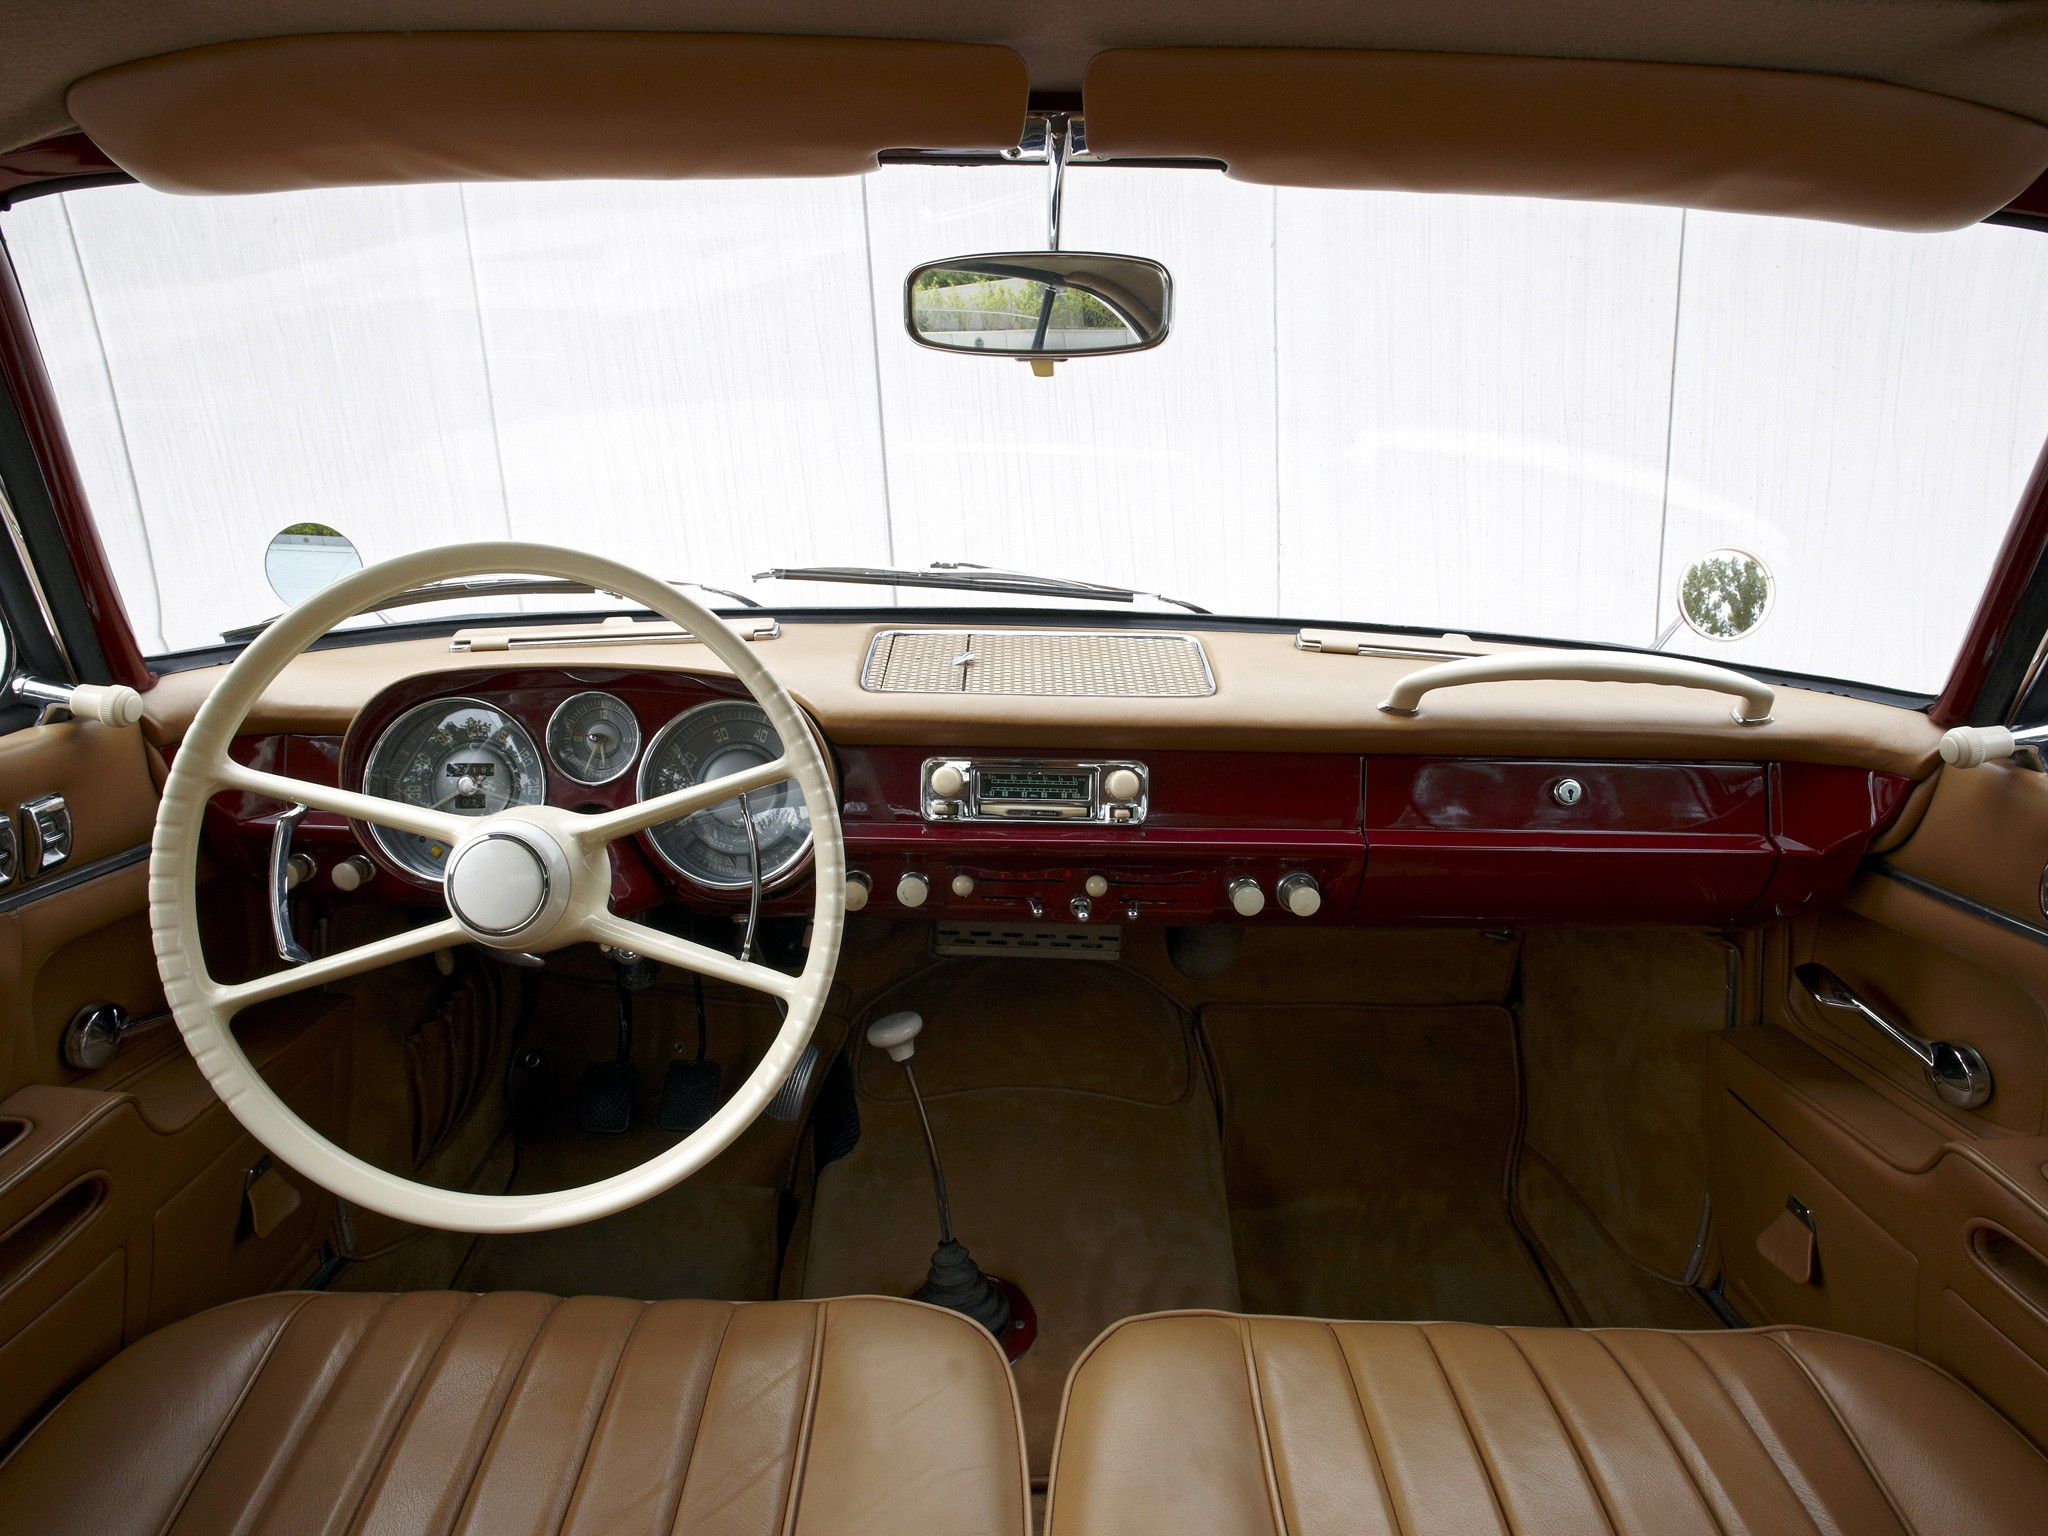 BMW 503 1956 - 1959 Coupe #7